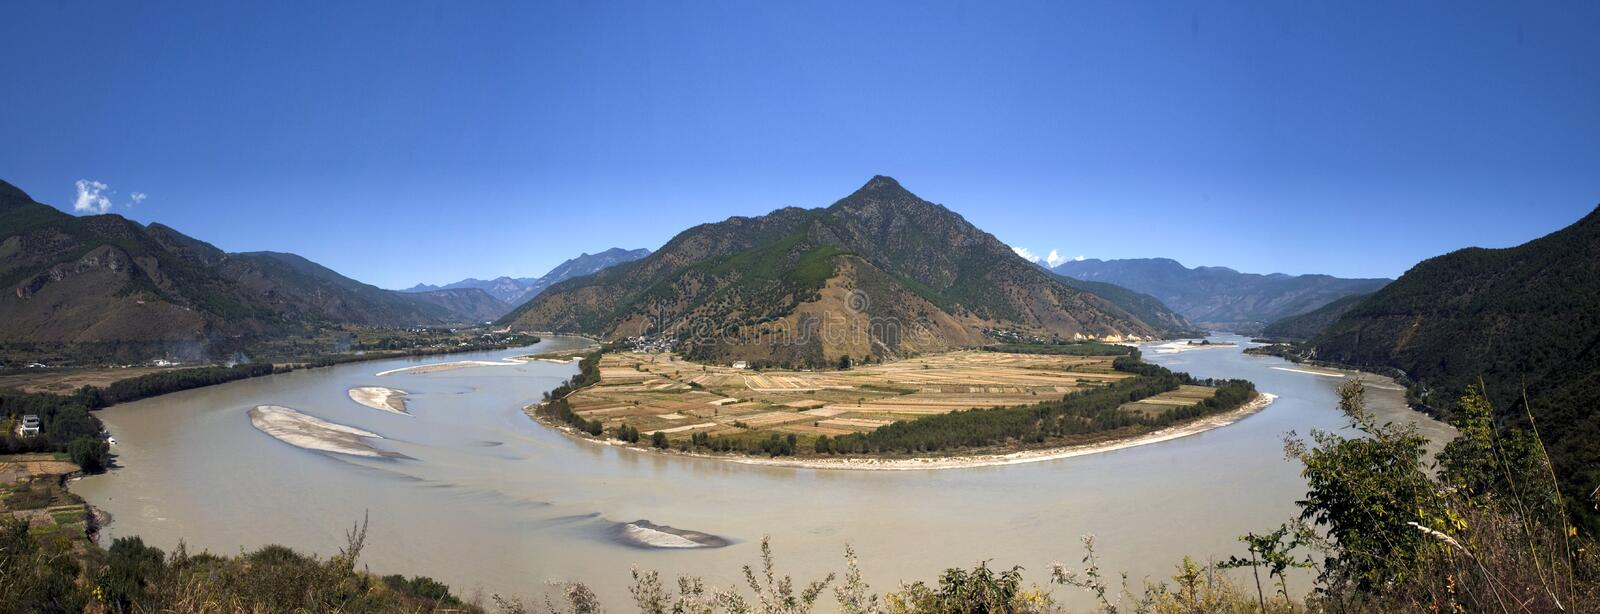 The First Bend Of The Yangtze River stock photo